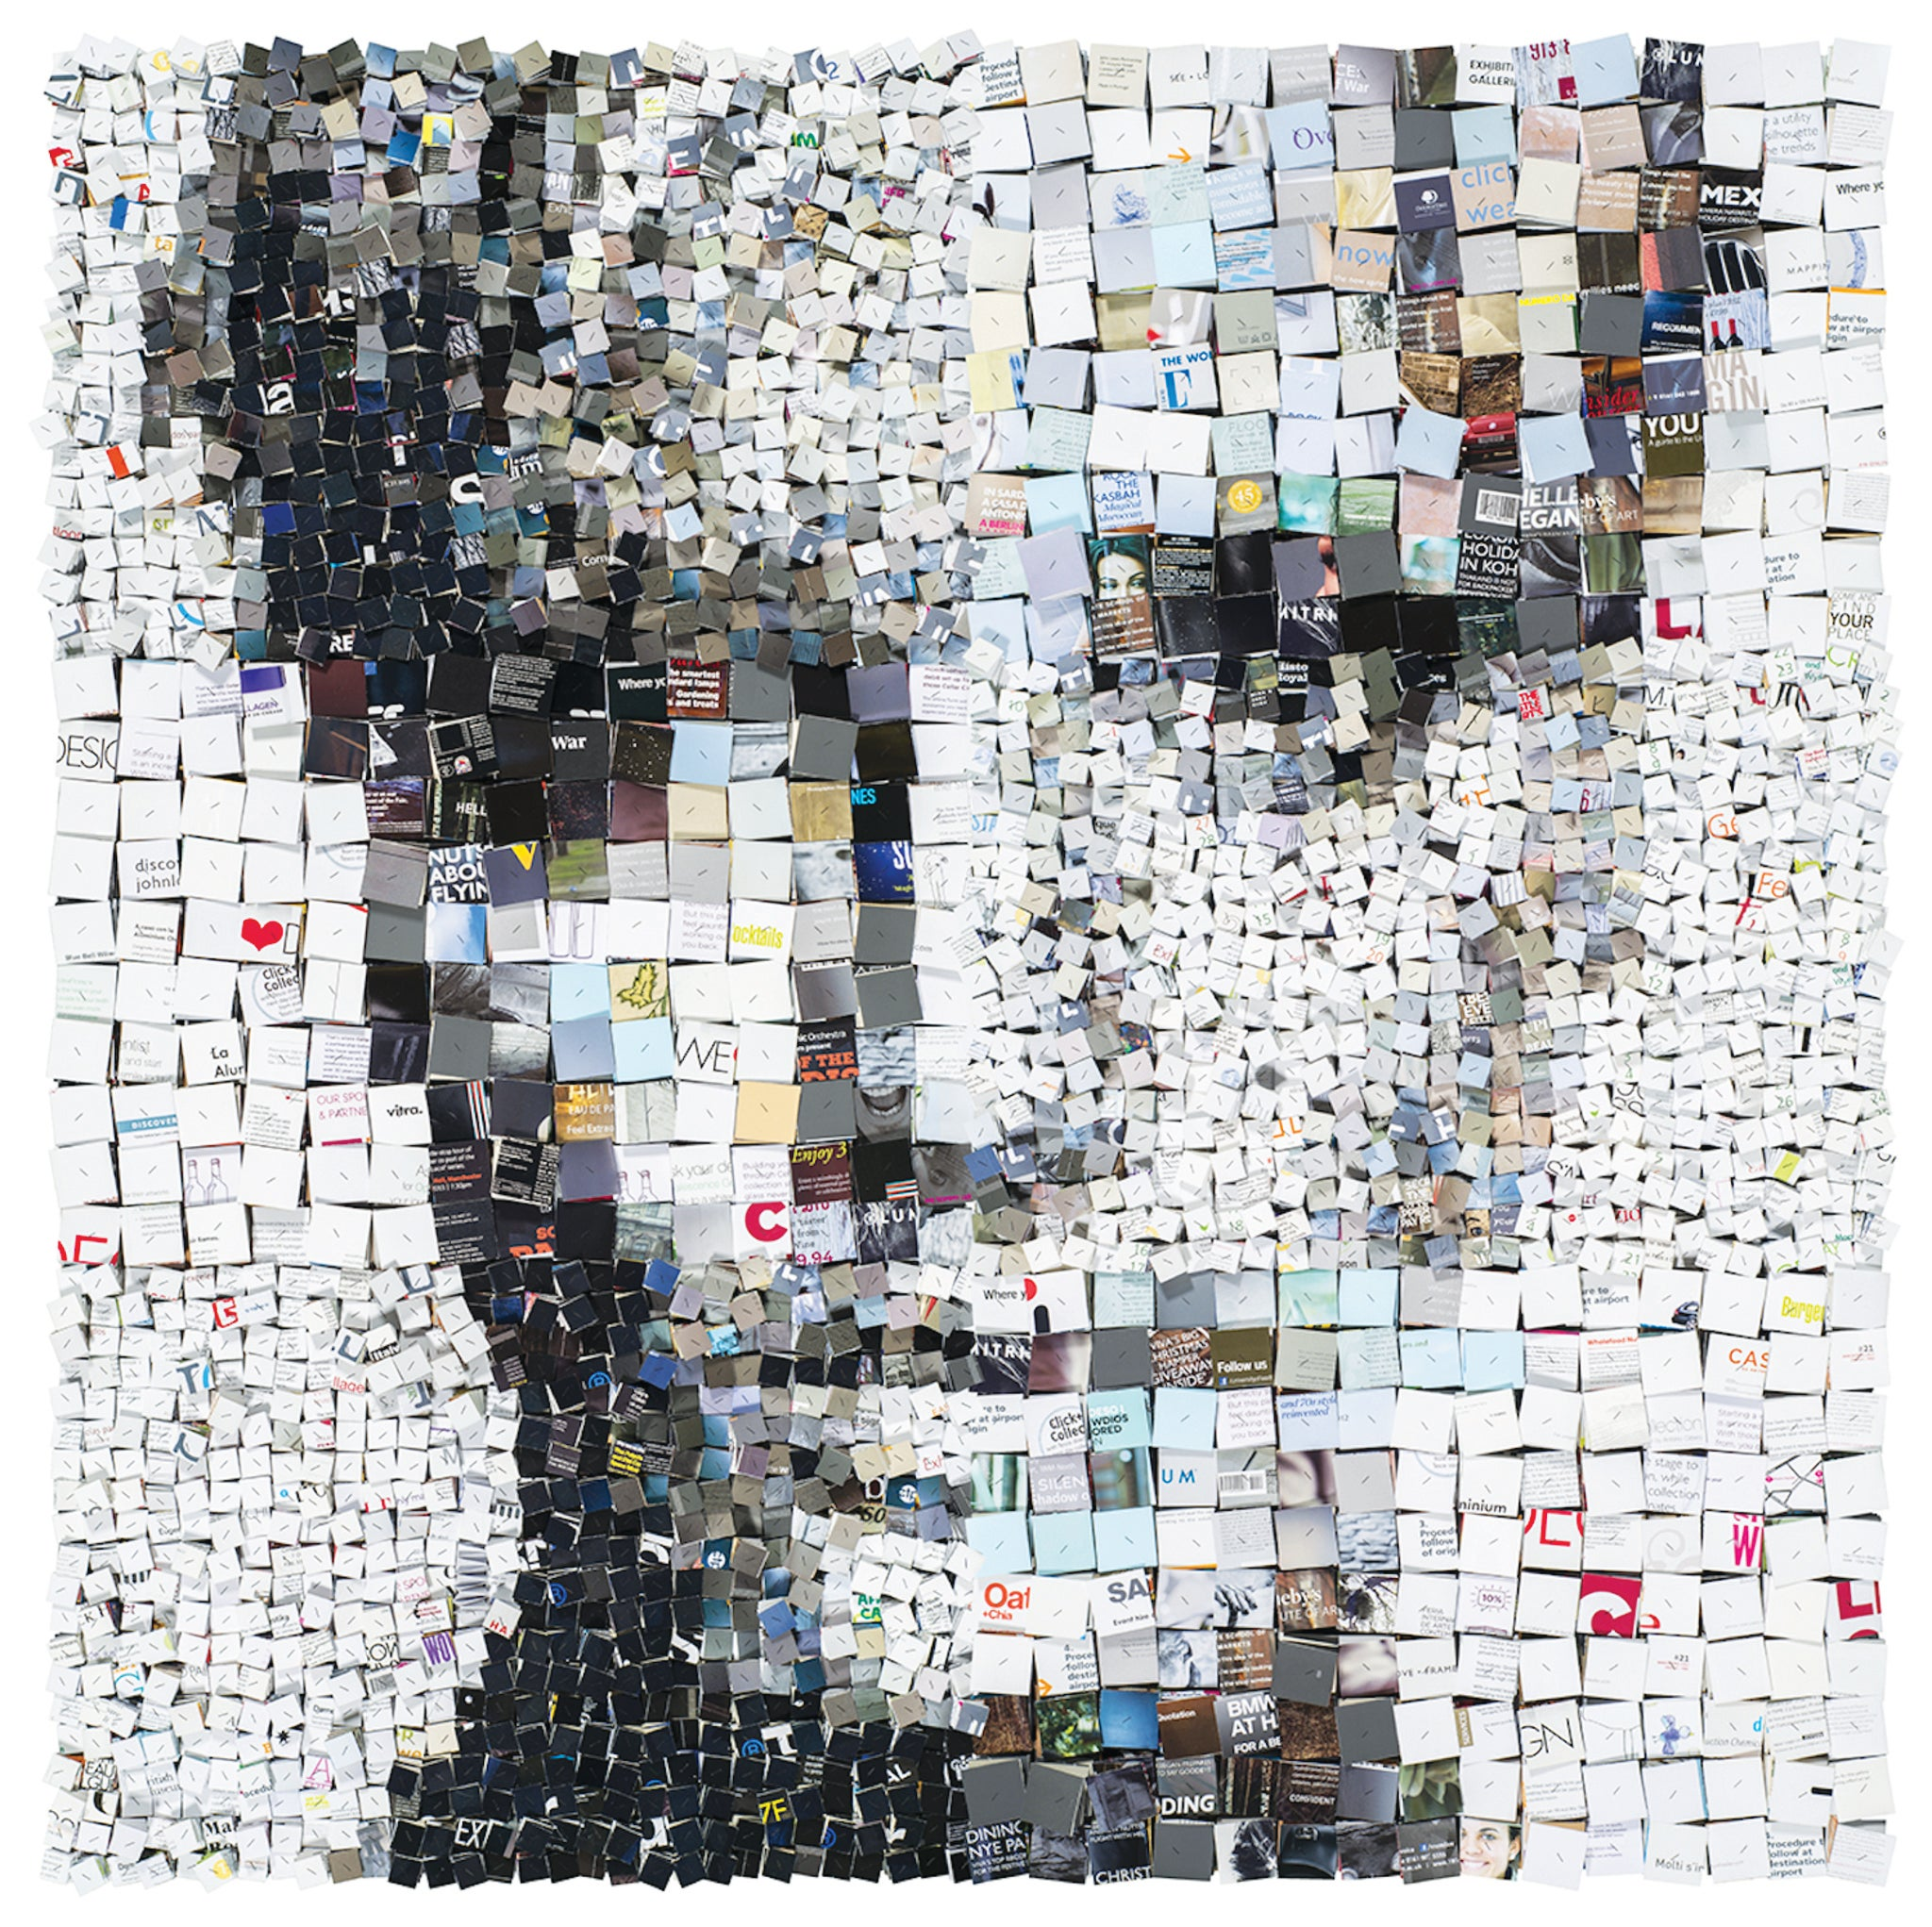 Paola Bazz – can you see me 2